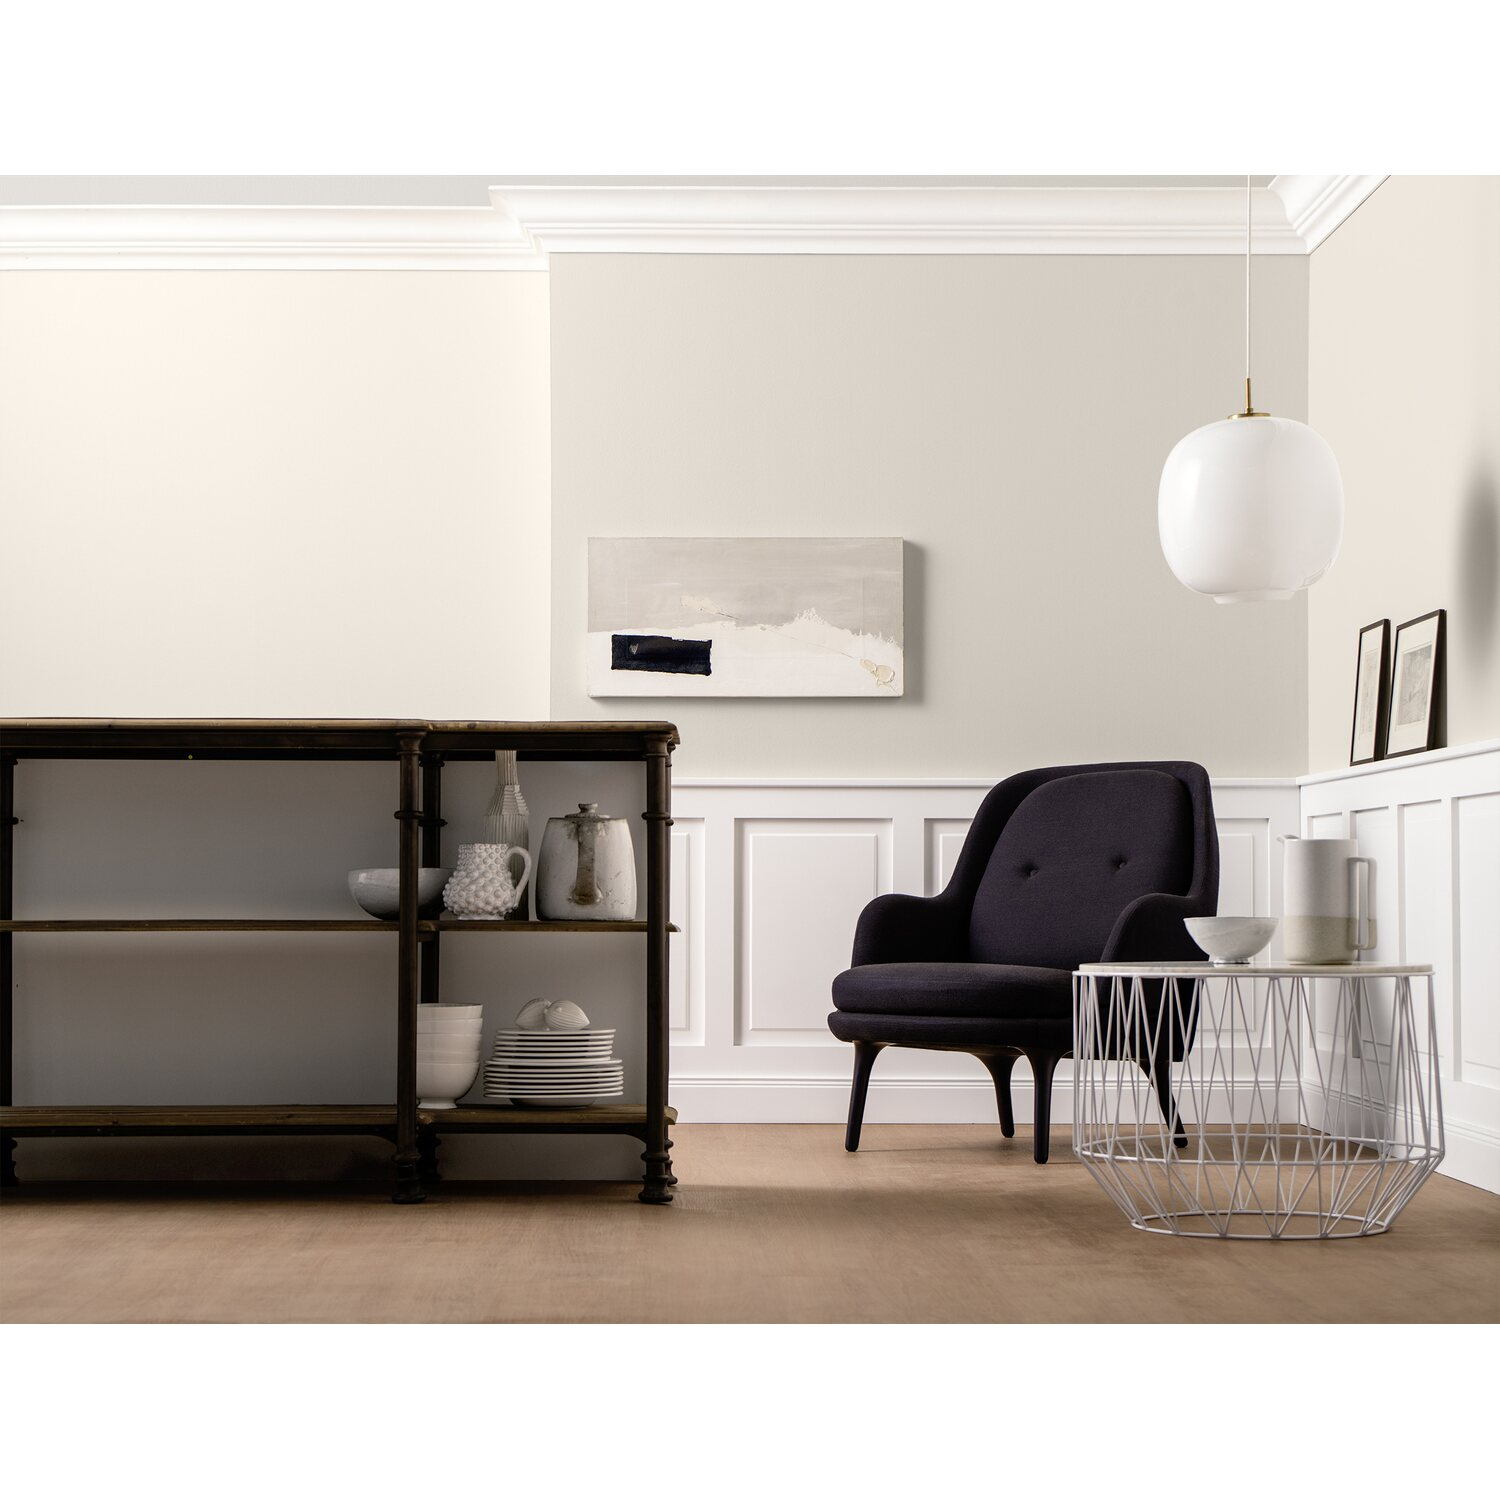 sch ner wohnen architects 39 finest westerpark samtmatt 100. Black Bedroom Furniture Sets. Home Design Ideas